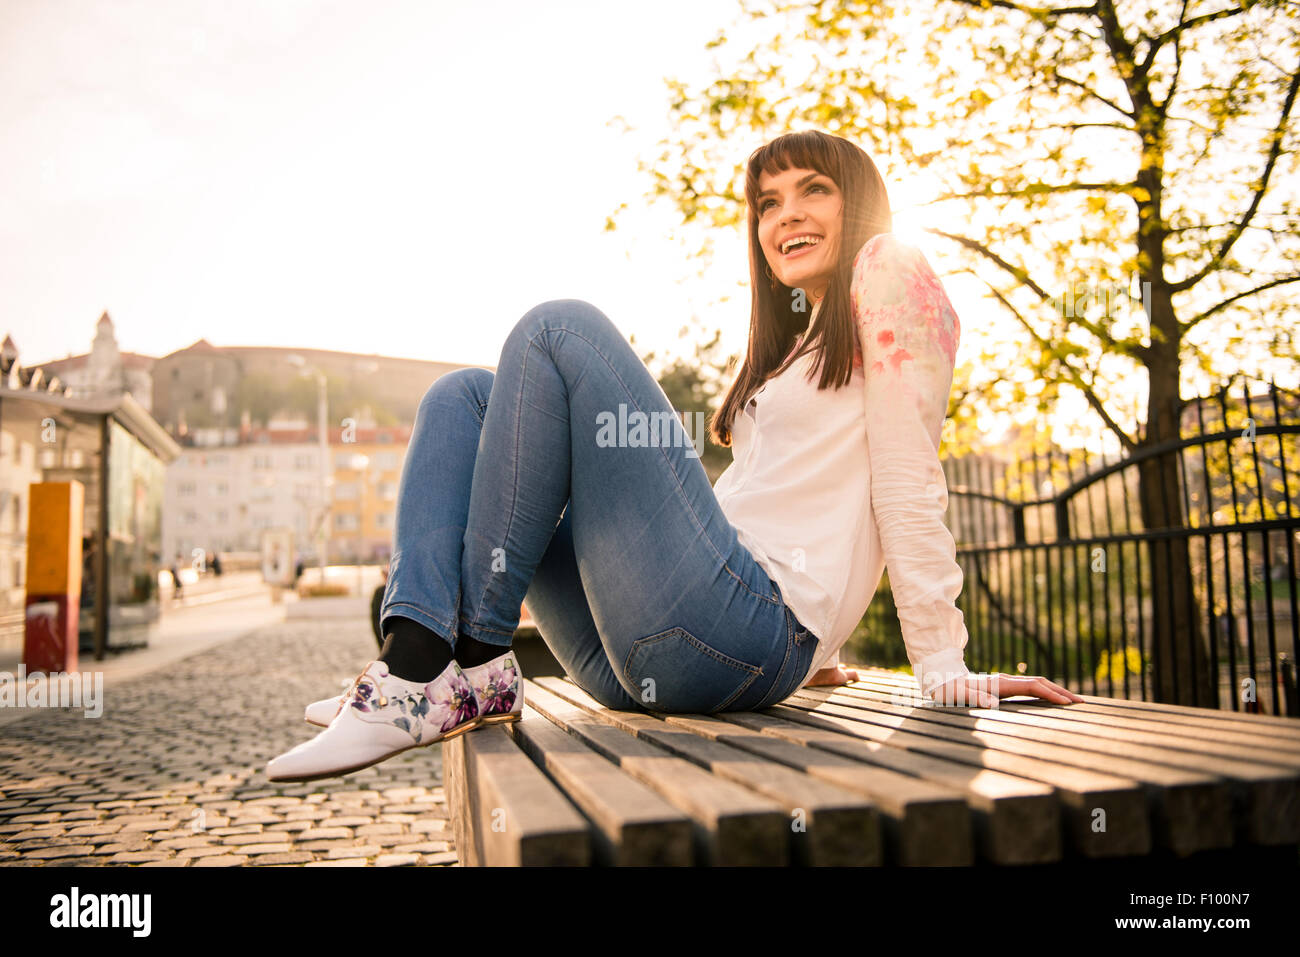 Young woman sitting on bench in street and enjoying life with sun in background - Stock Image